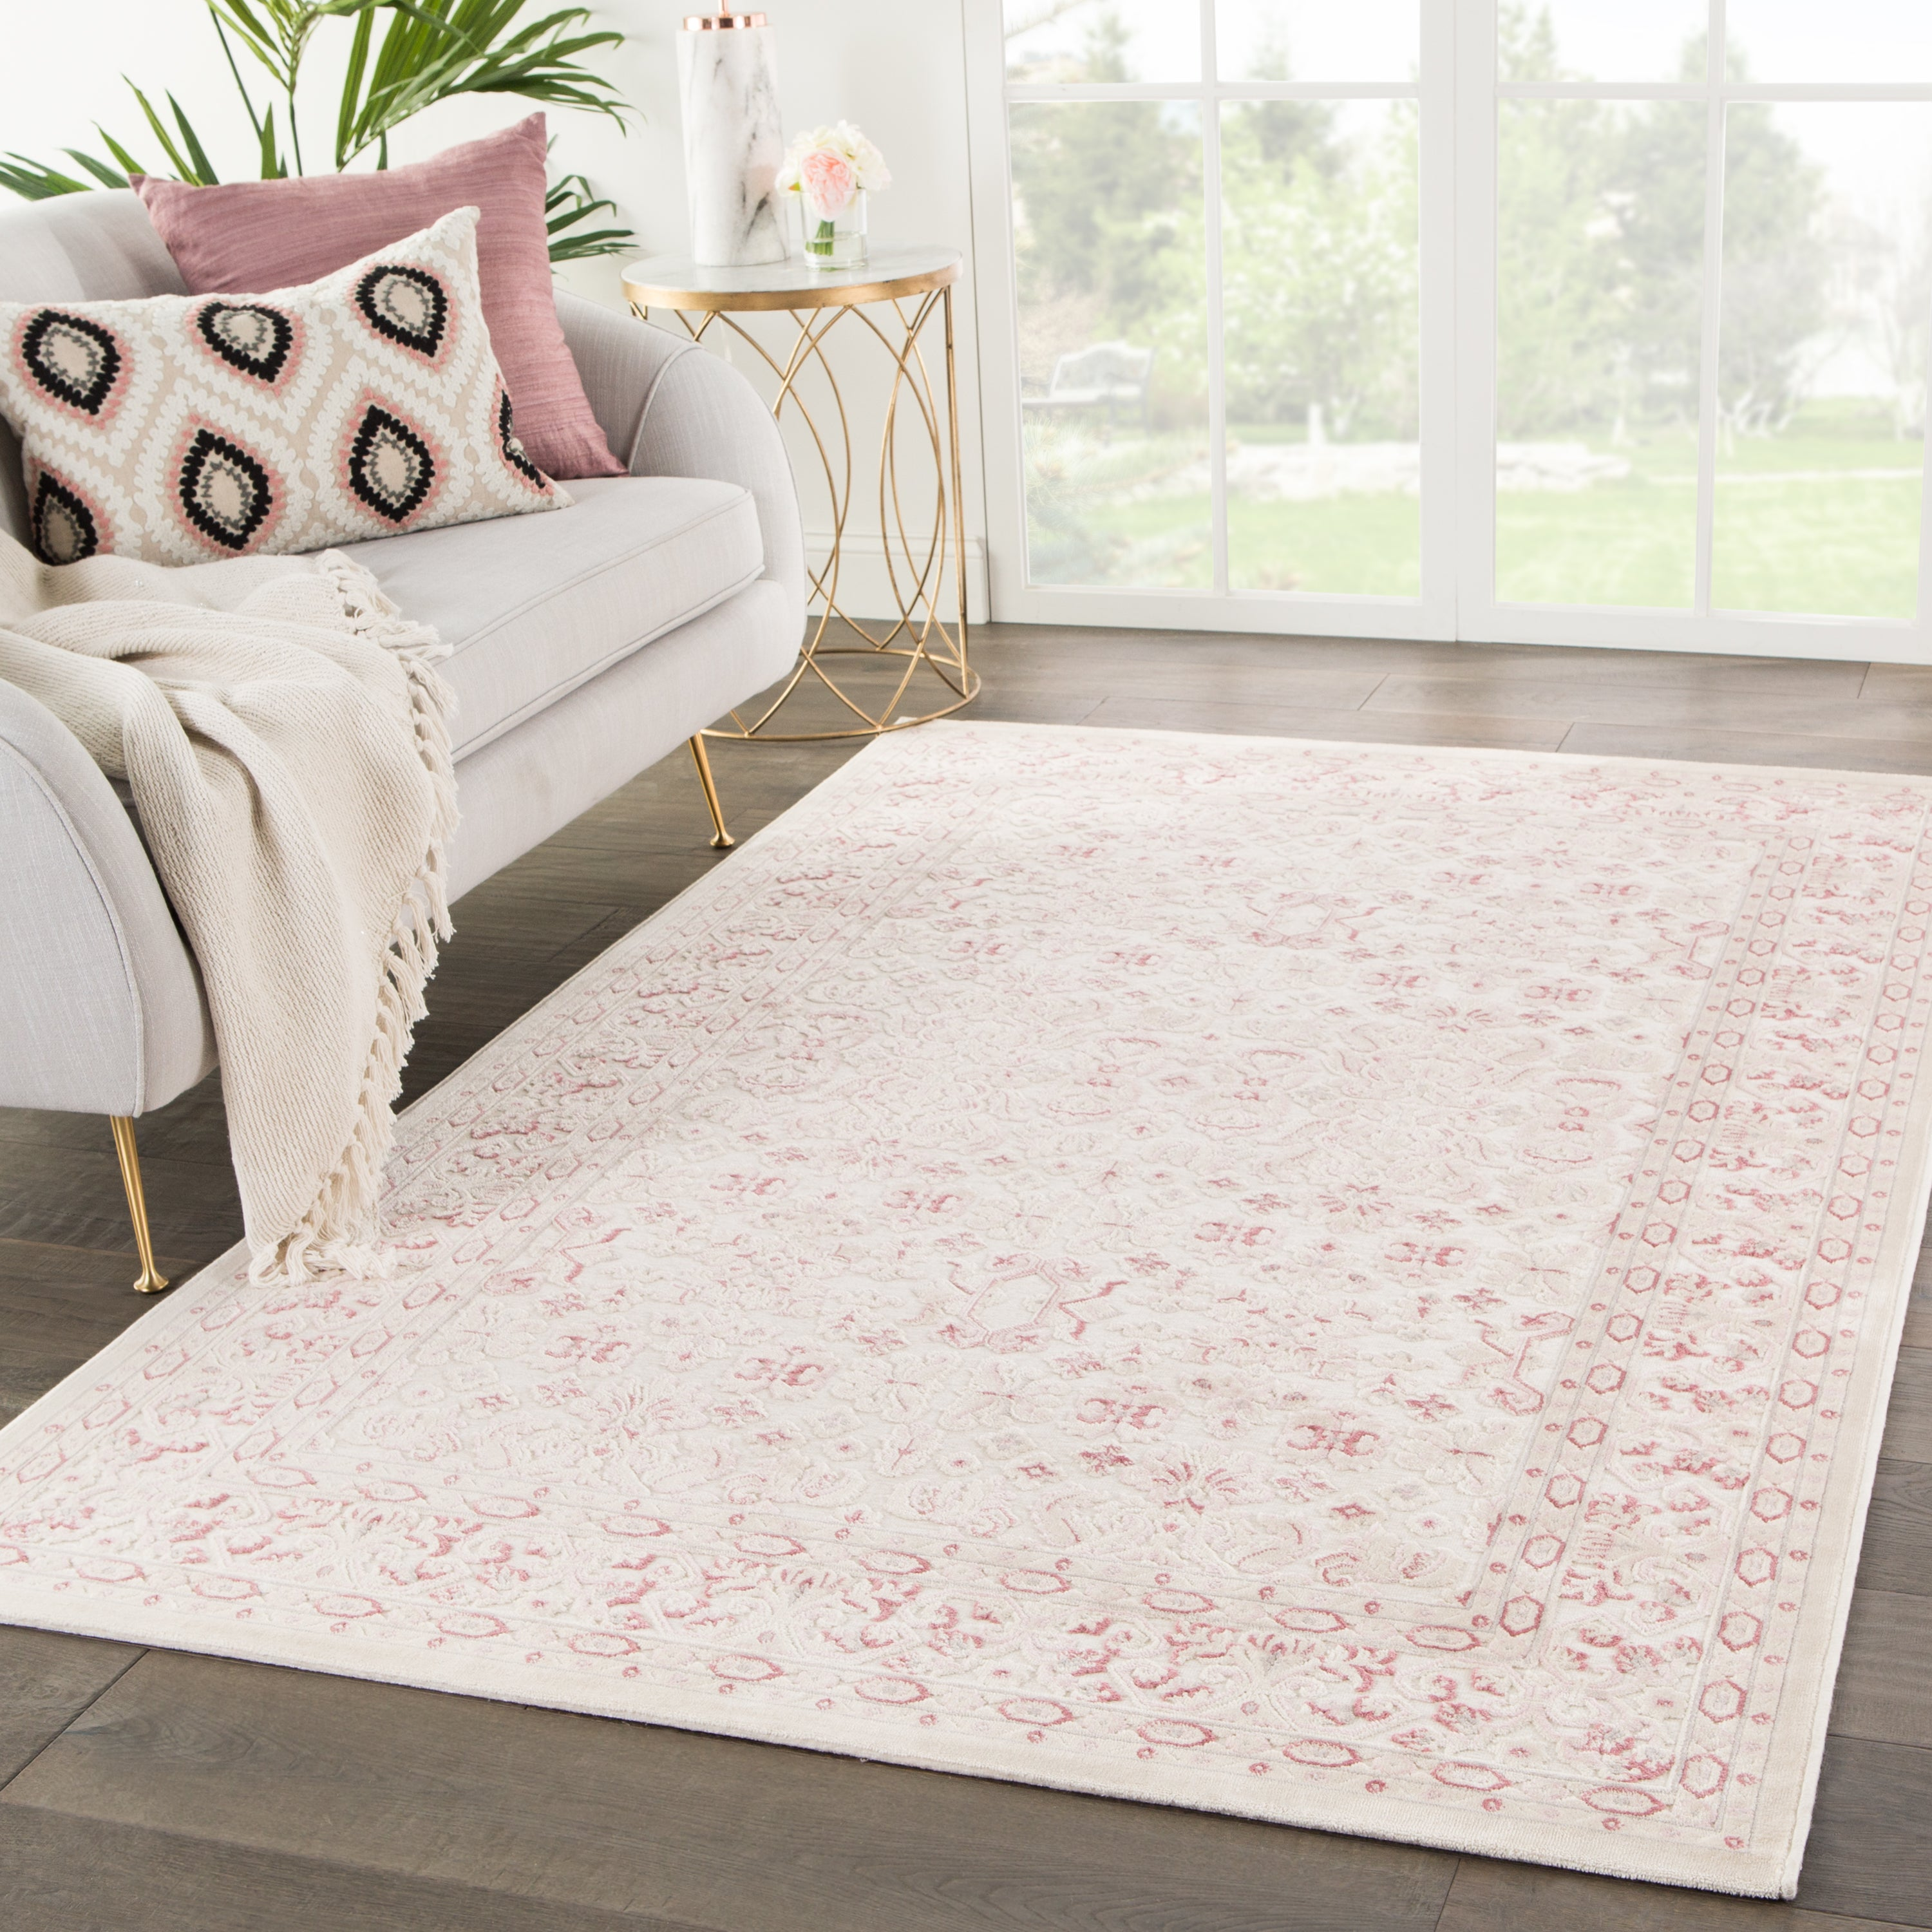 Rectangle Pink Damask Machine Made Synthetics Contemporary recommended for Kitchen, Bedroom, Bathroom, Dining Room, Office, Hallway, Living Room